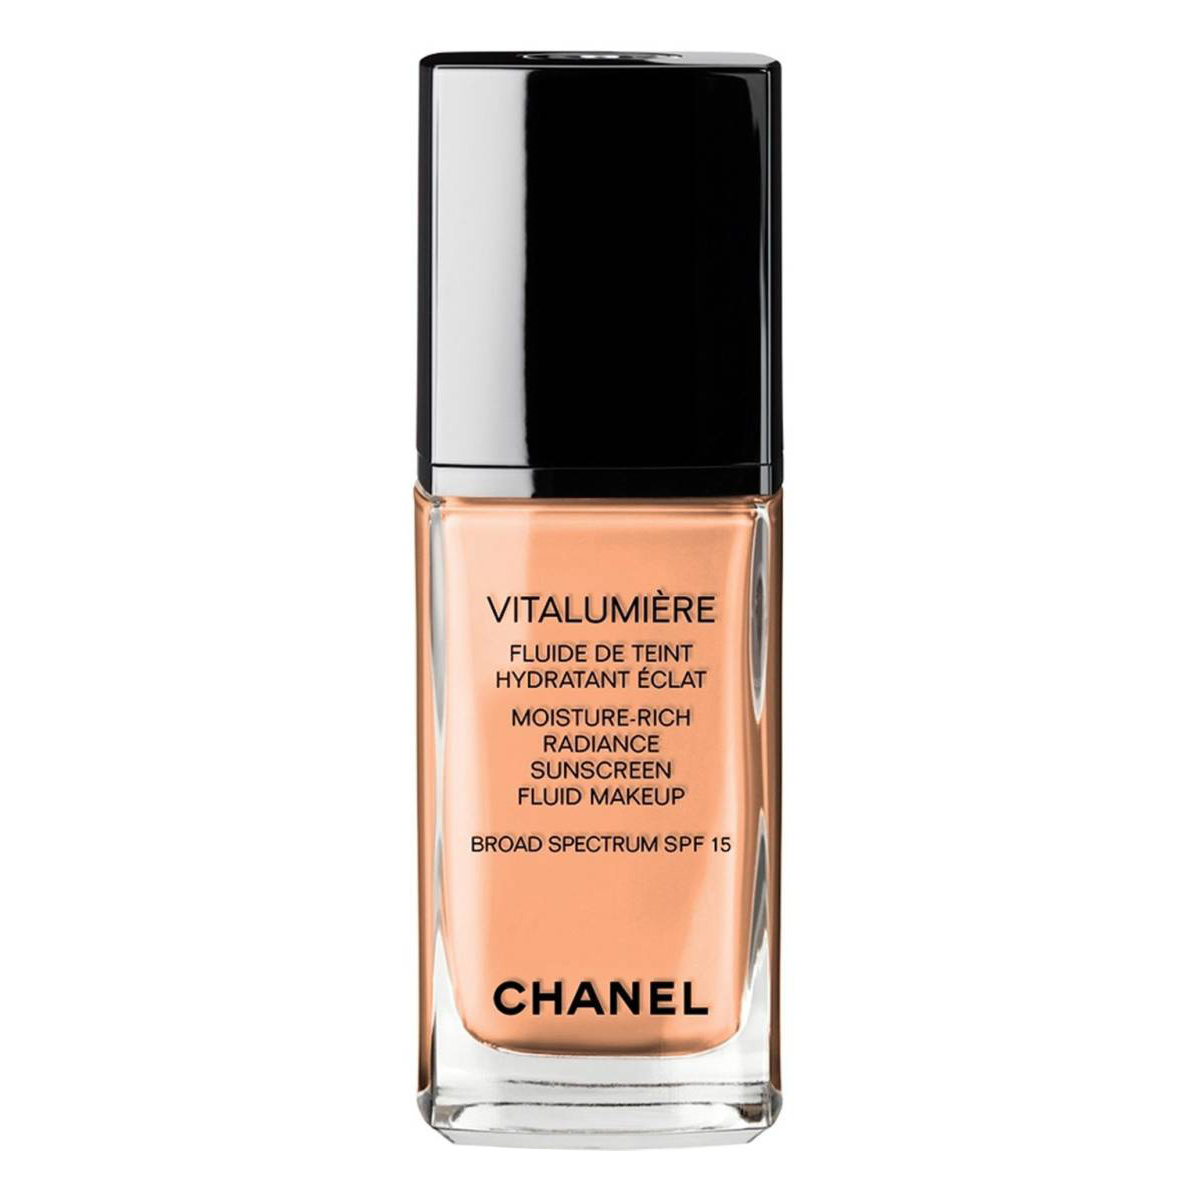 CHANEL VITALUMIÈRE MOISTURE-RICH RADIANCE SUNSCREEN FLUID MAKEUP